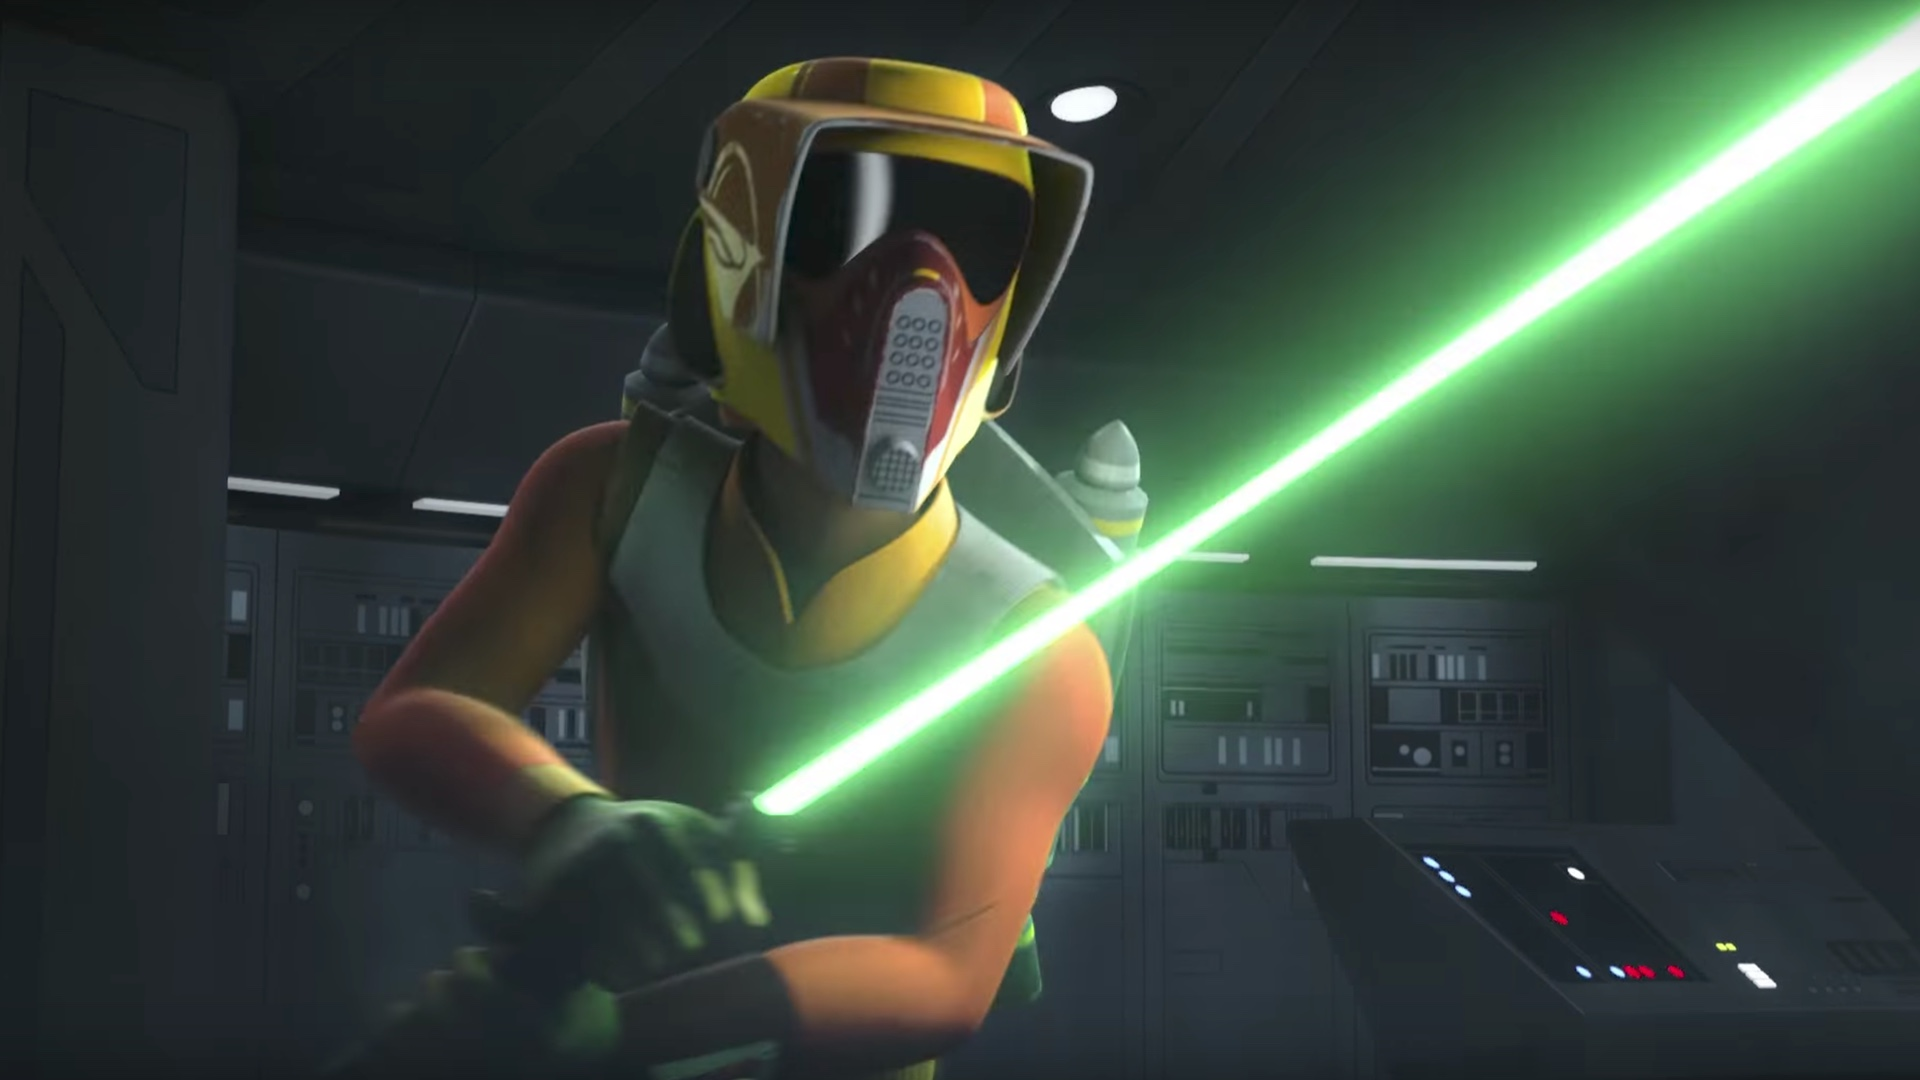 Epically Exciting New Trailer For Star Wars Rebels Season 4 And